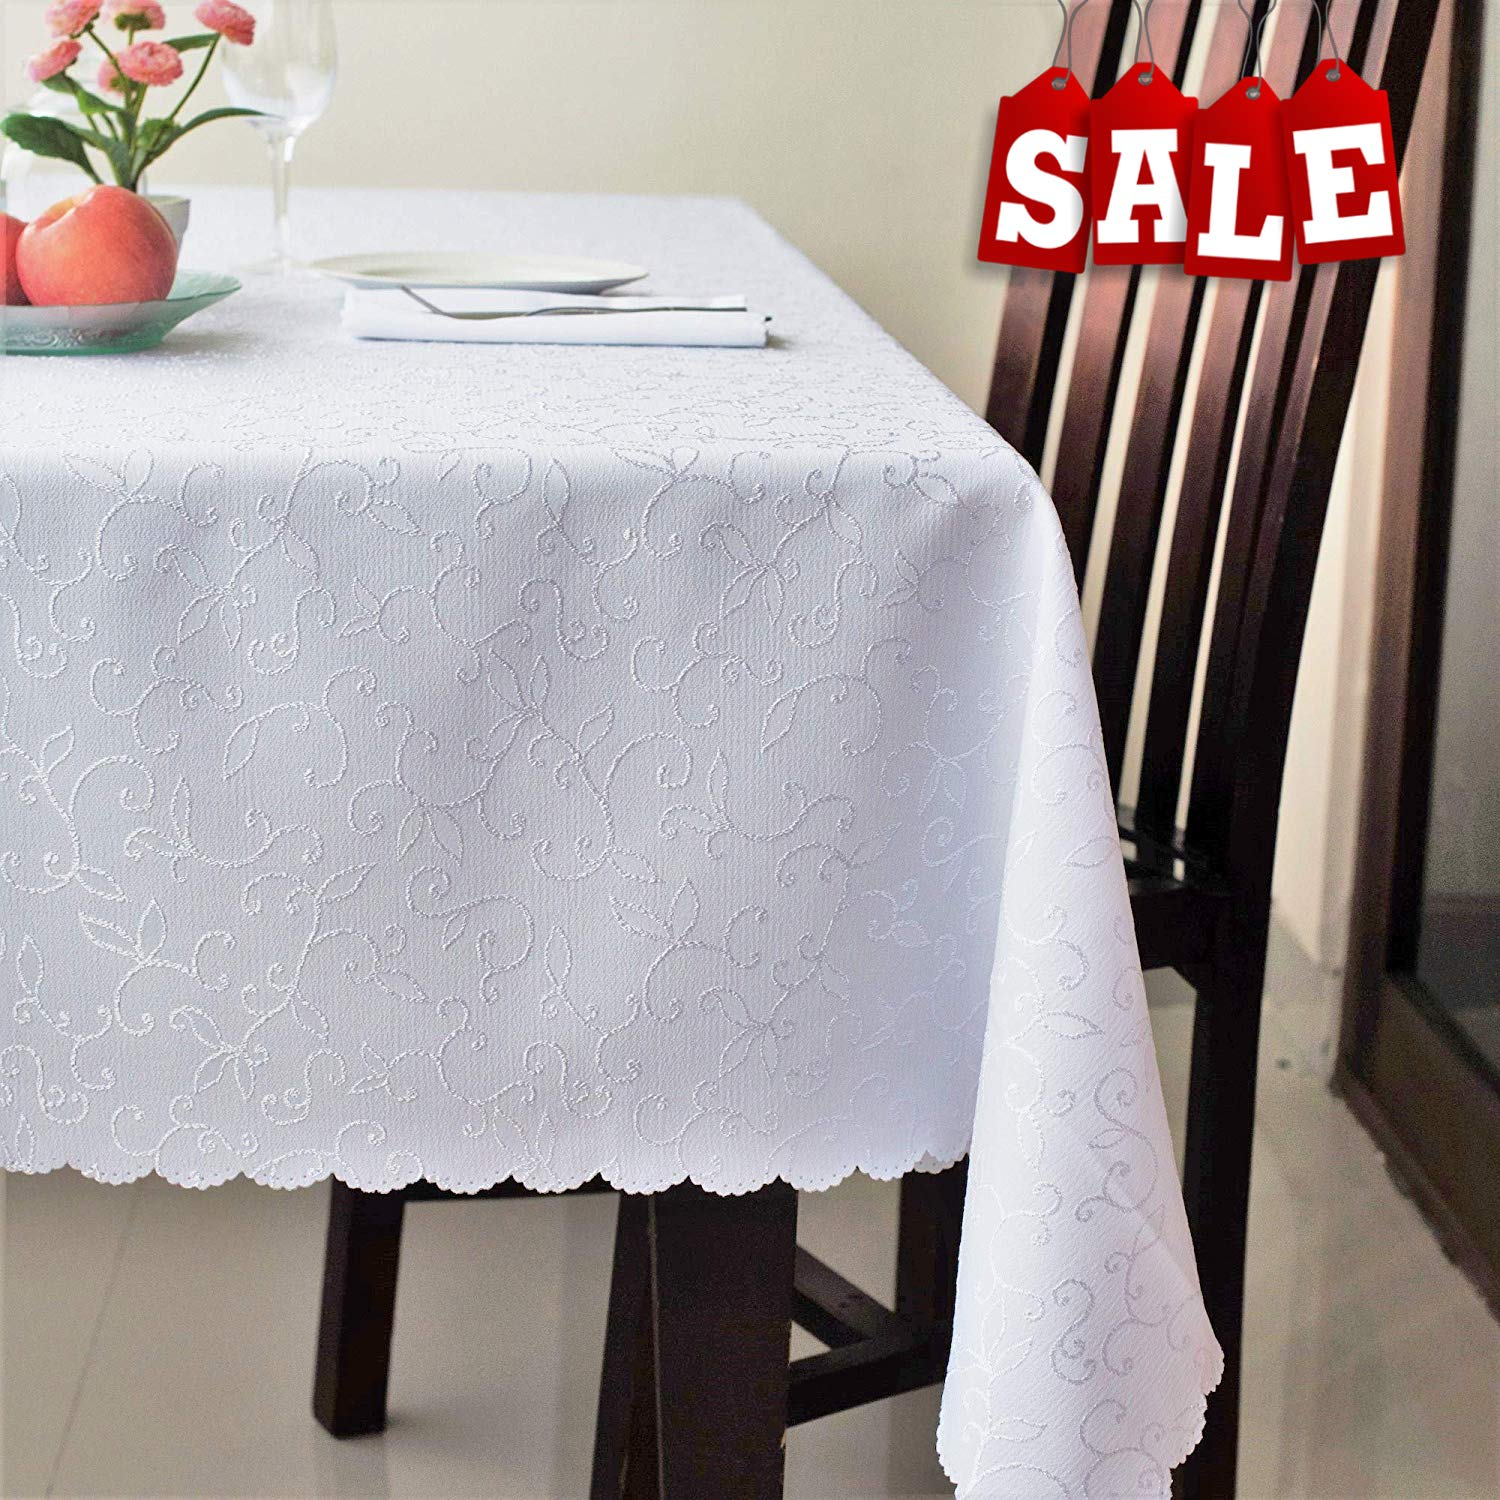 "Stain Resistant Turkish White Dining Tablecloth Polyester Table Cover - Rectangle Square Round Washable Non Iron - Thanksgiving Christmas Dinner Wedding New Year Eve Gift (WHITE, Rectangle 60""x120"")"